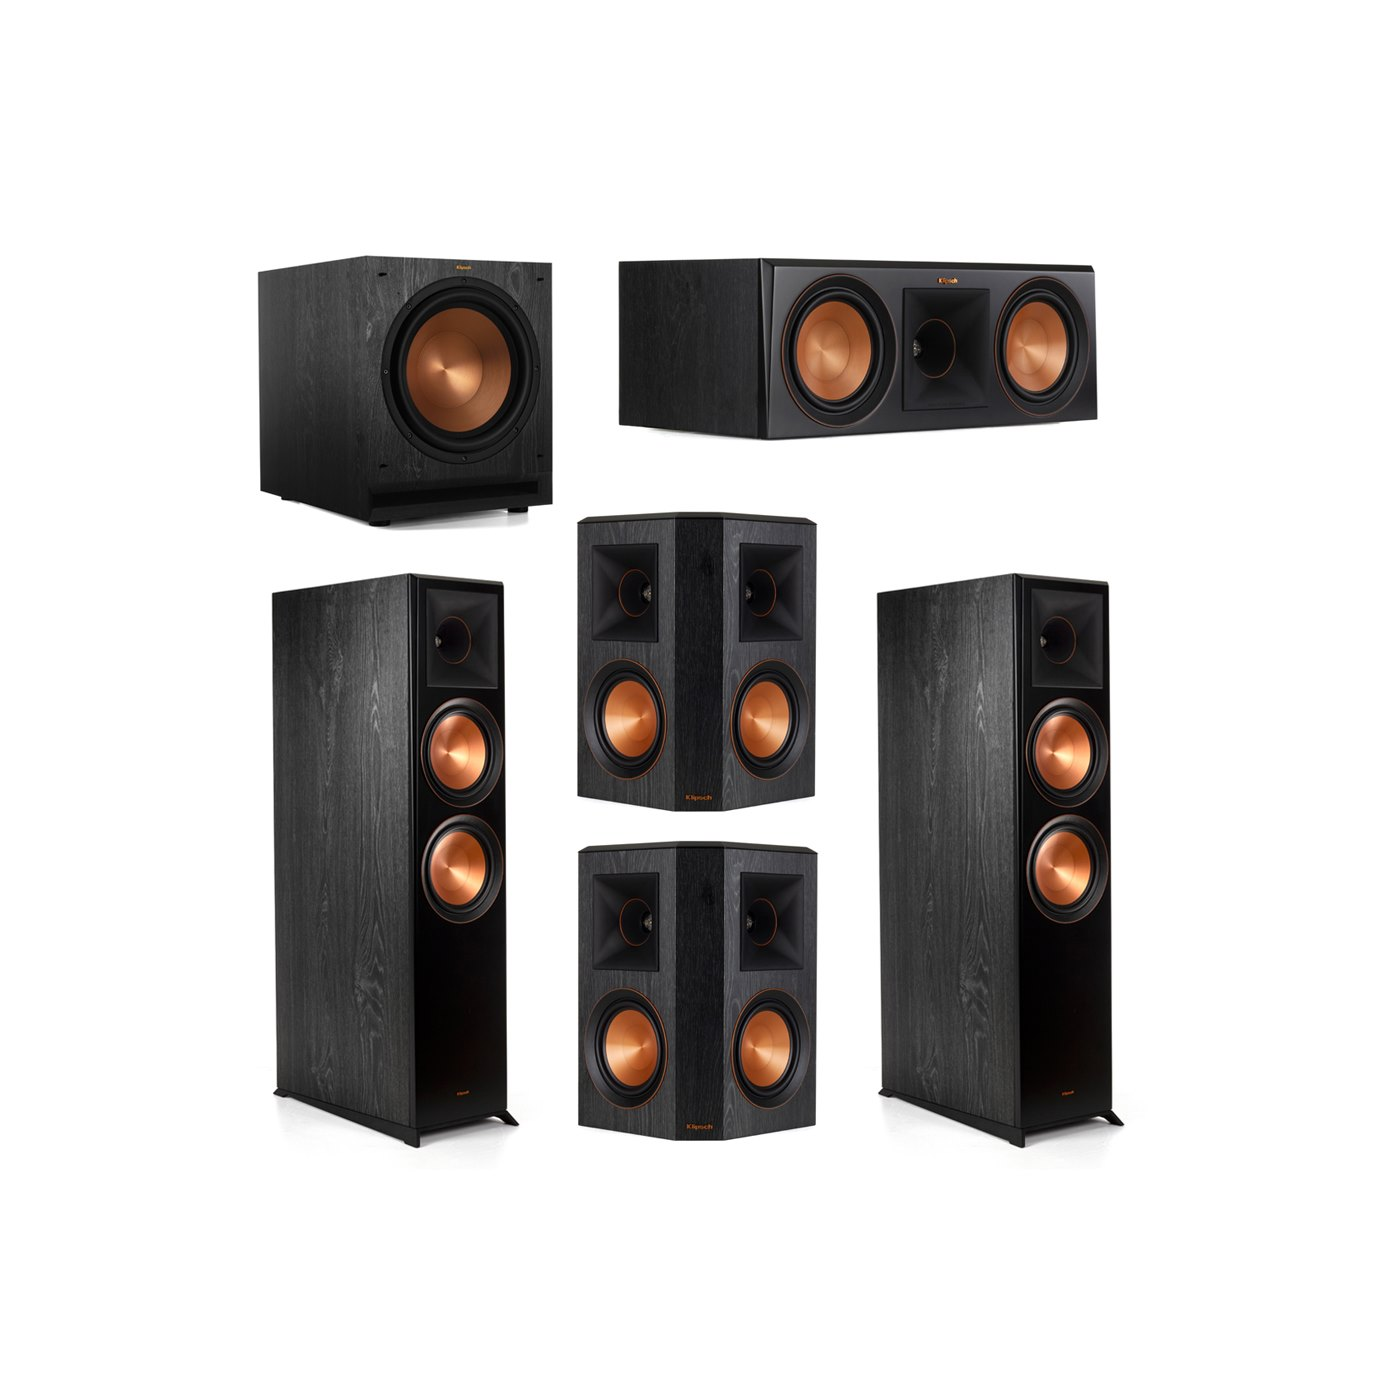 Klipsch 5.1.2 System - 2 RP-8060FA Dolby Atmos Speakers, 1 RP-600C, 2 RP-502S Speakers, 1 SPL-120